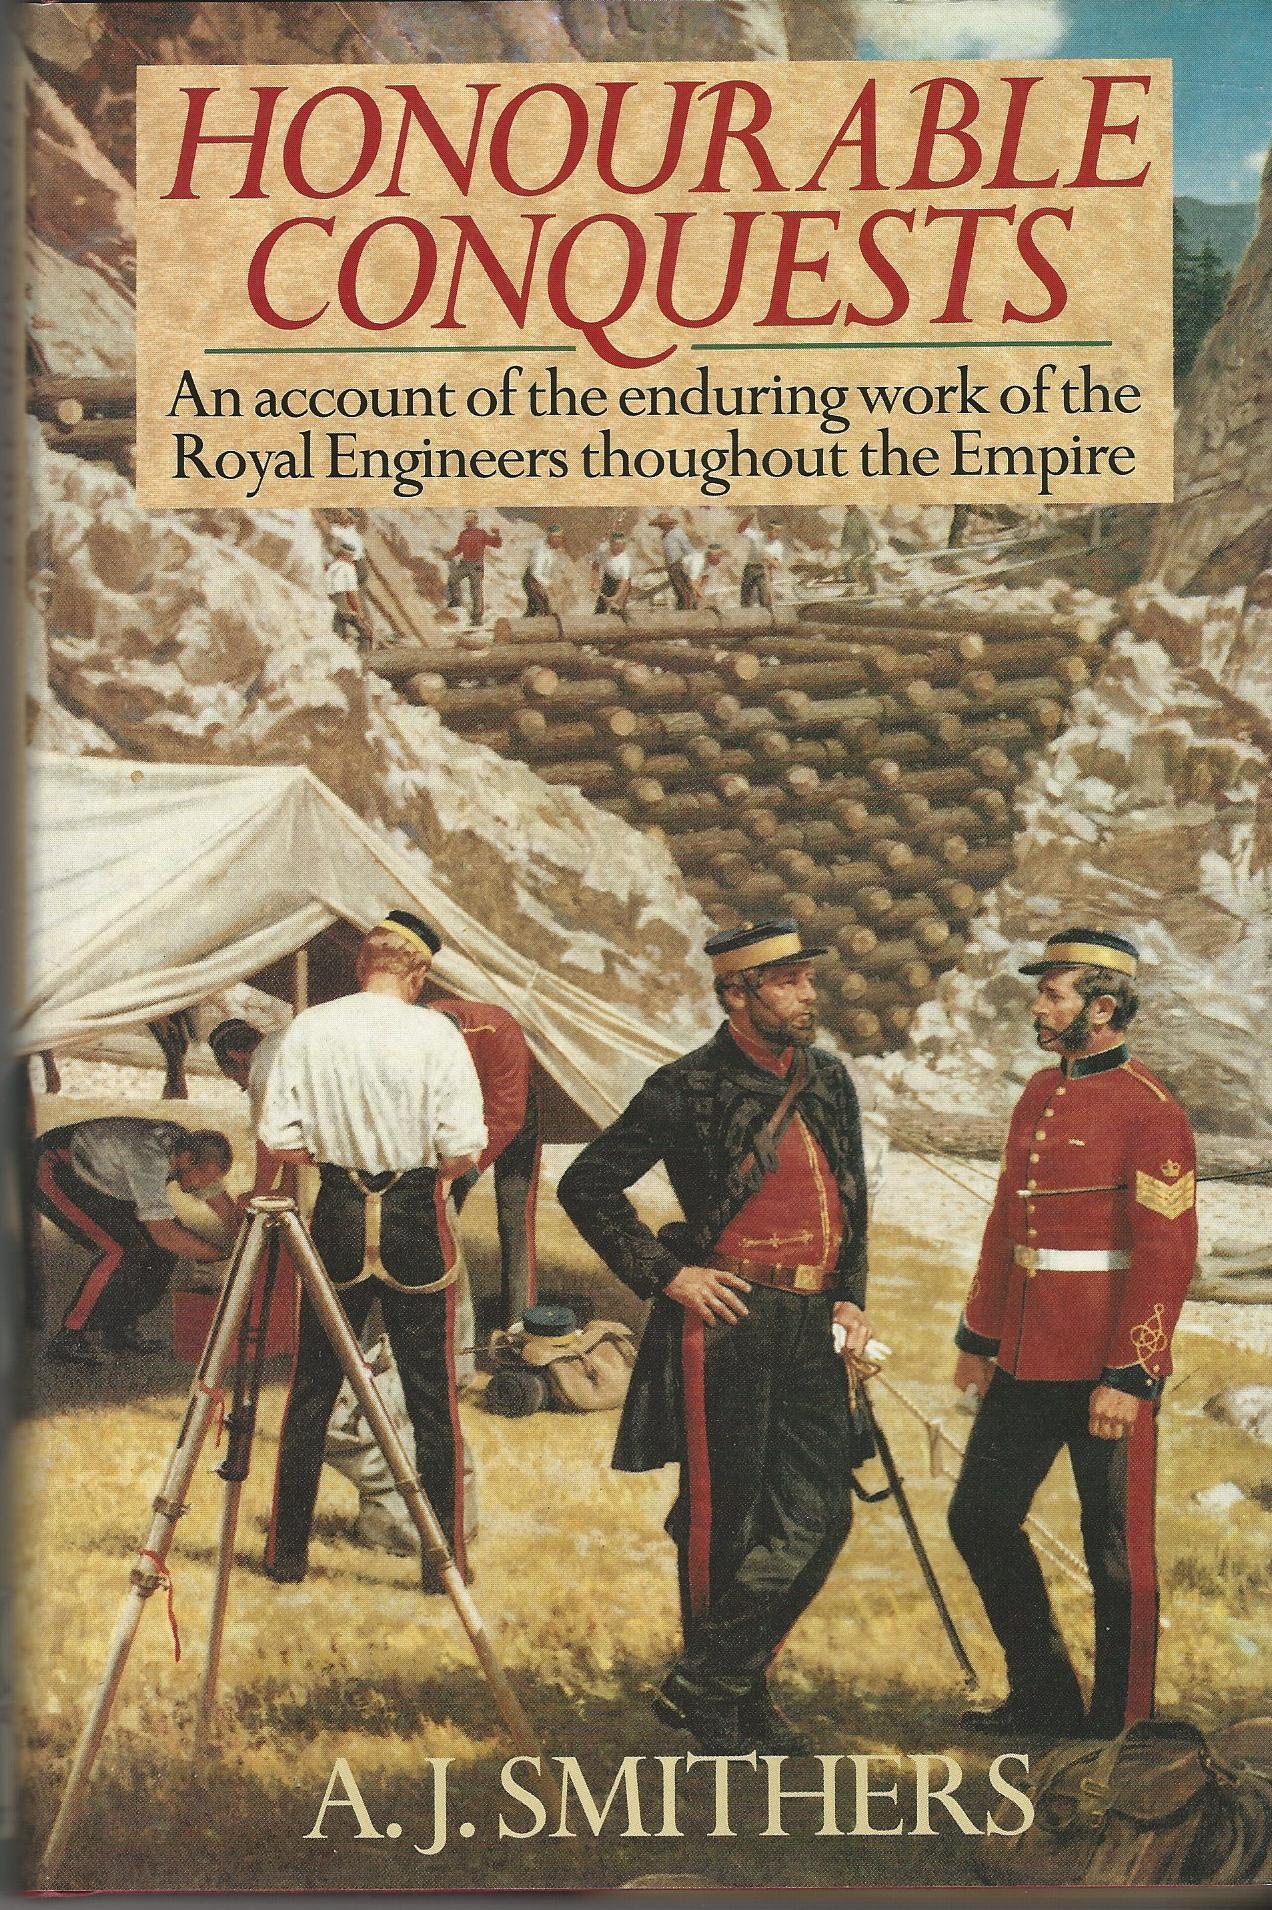 Image for Honourable Conquests: Account of the Enduring Work of the Royal Engineers Throughout the Empire